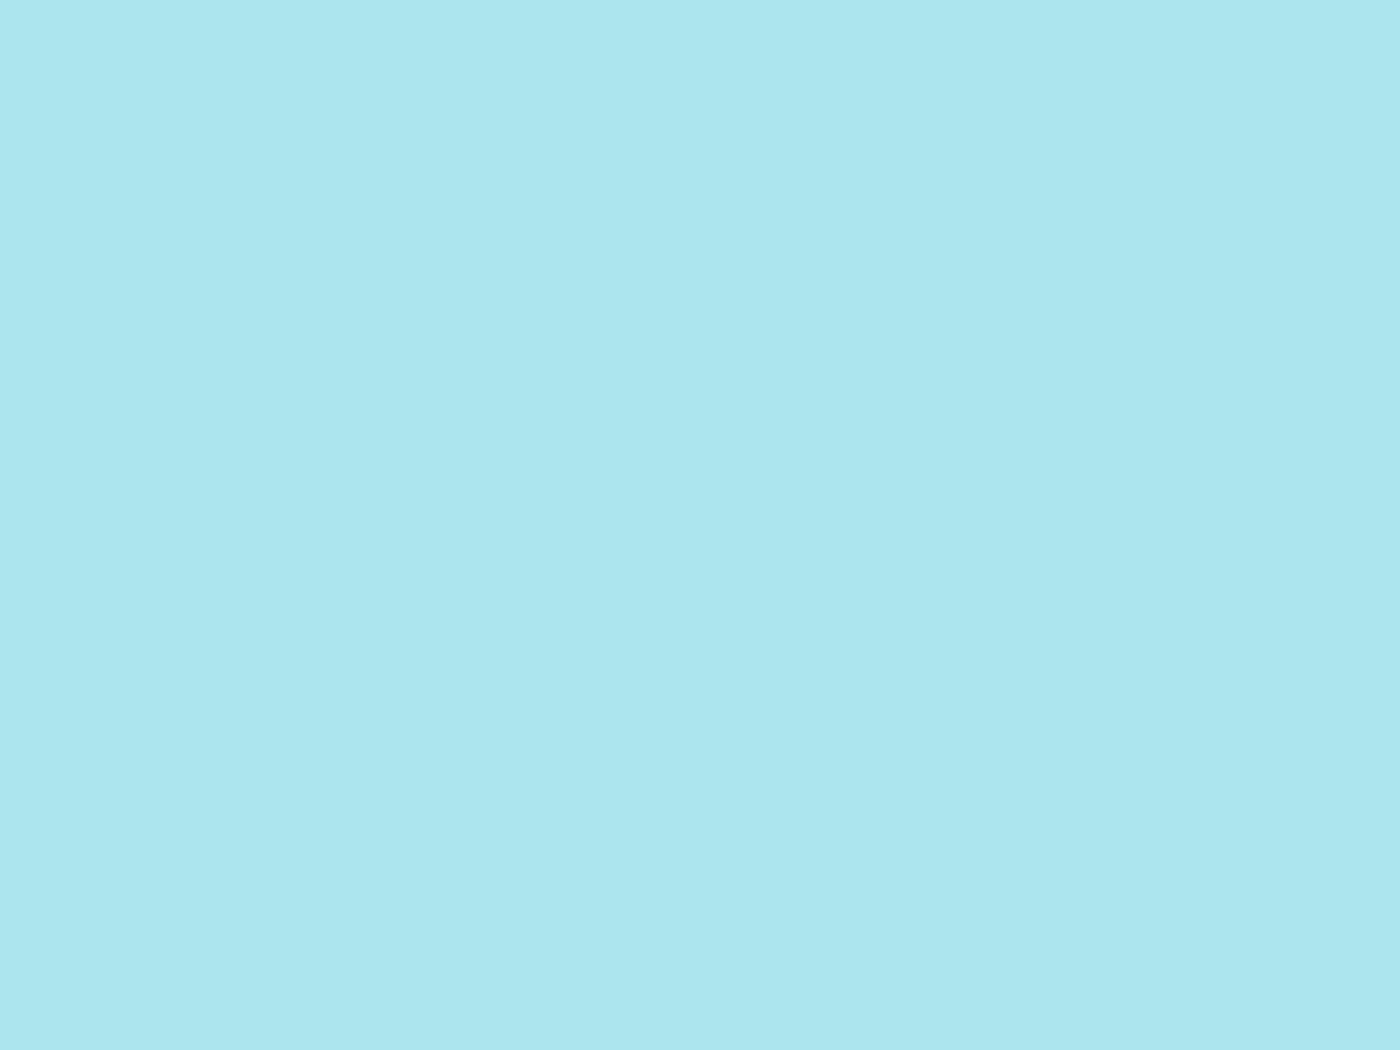 1400x1050 Blizzard Blue Solid Color Background